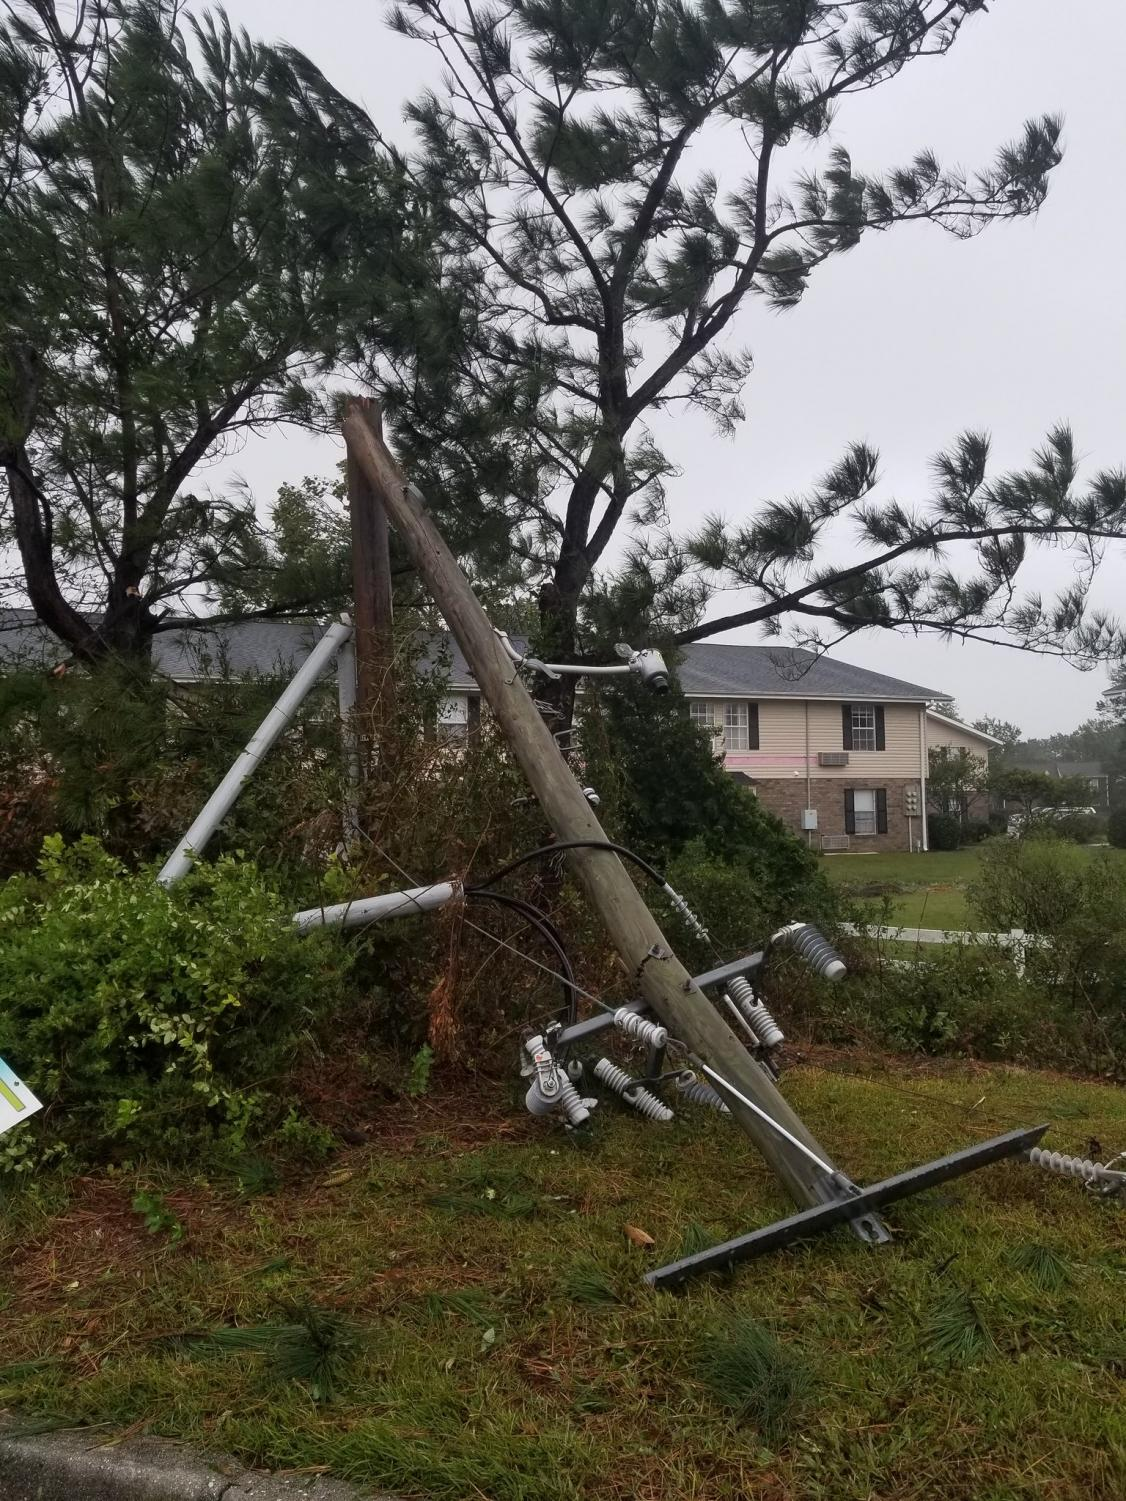 Power+lines+and+poles+were+damaged+severely+by+Hurricane+Florence%2C+leaving+hundreds+of+thousands+of+customers+in+Wilmington+and+surrounding+counties+without+power+for+days.